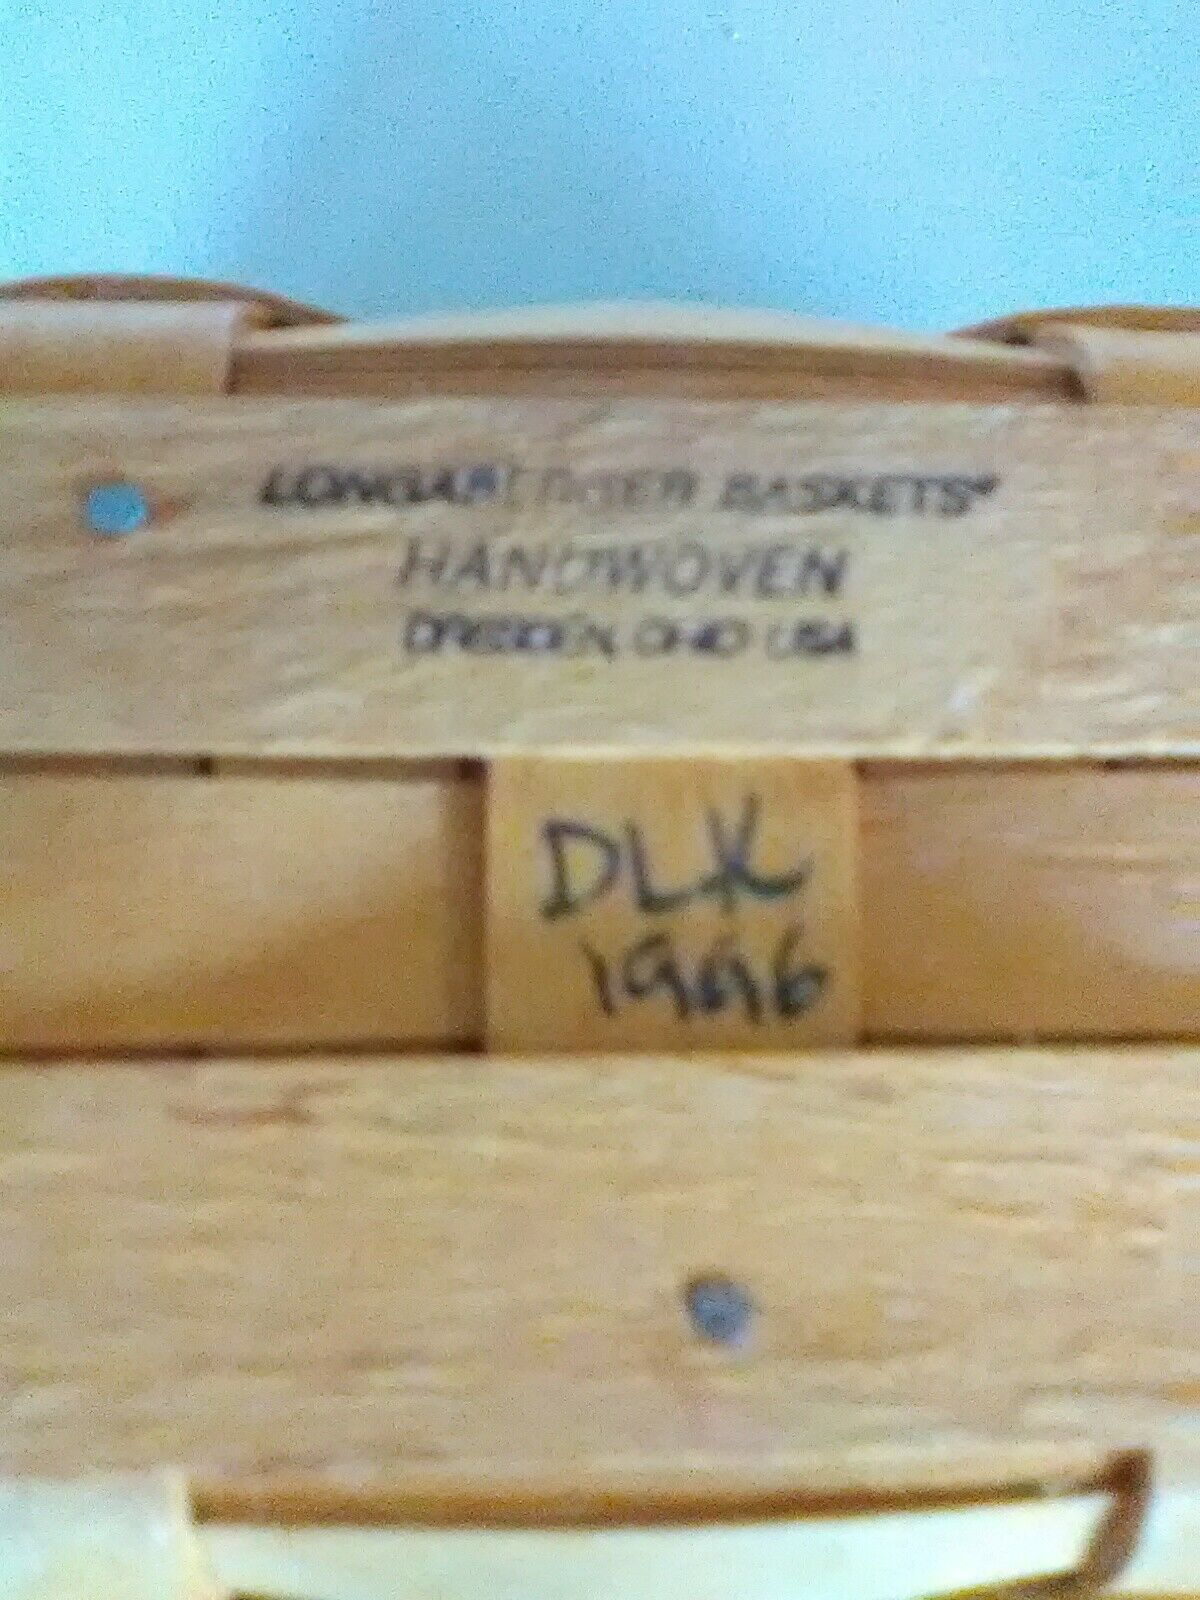 1996 Edition Longaberger Swing Handle Dresden Tour Basket w/ Plastic Liner image 6